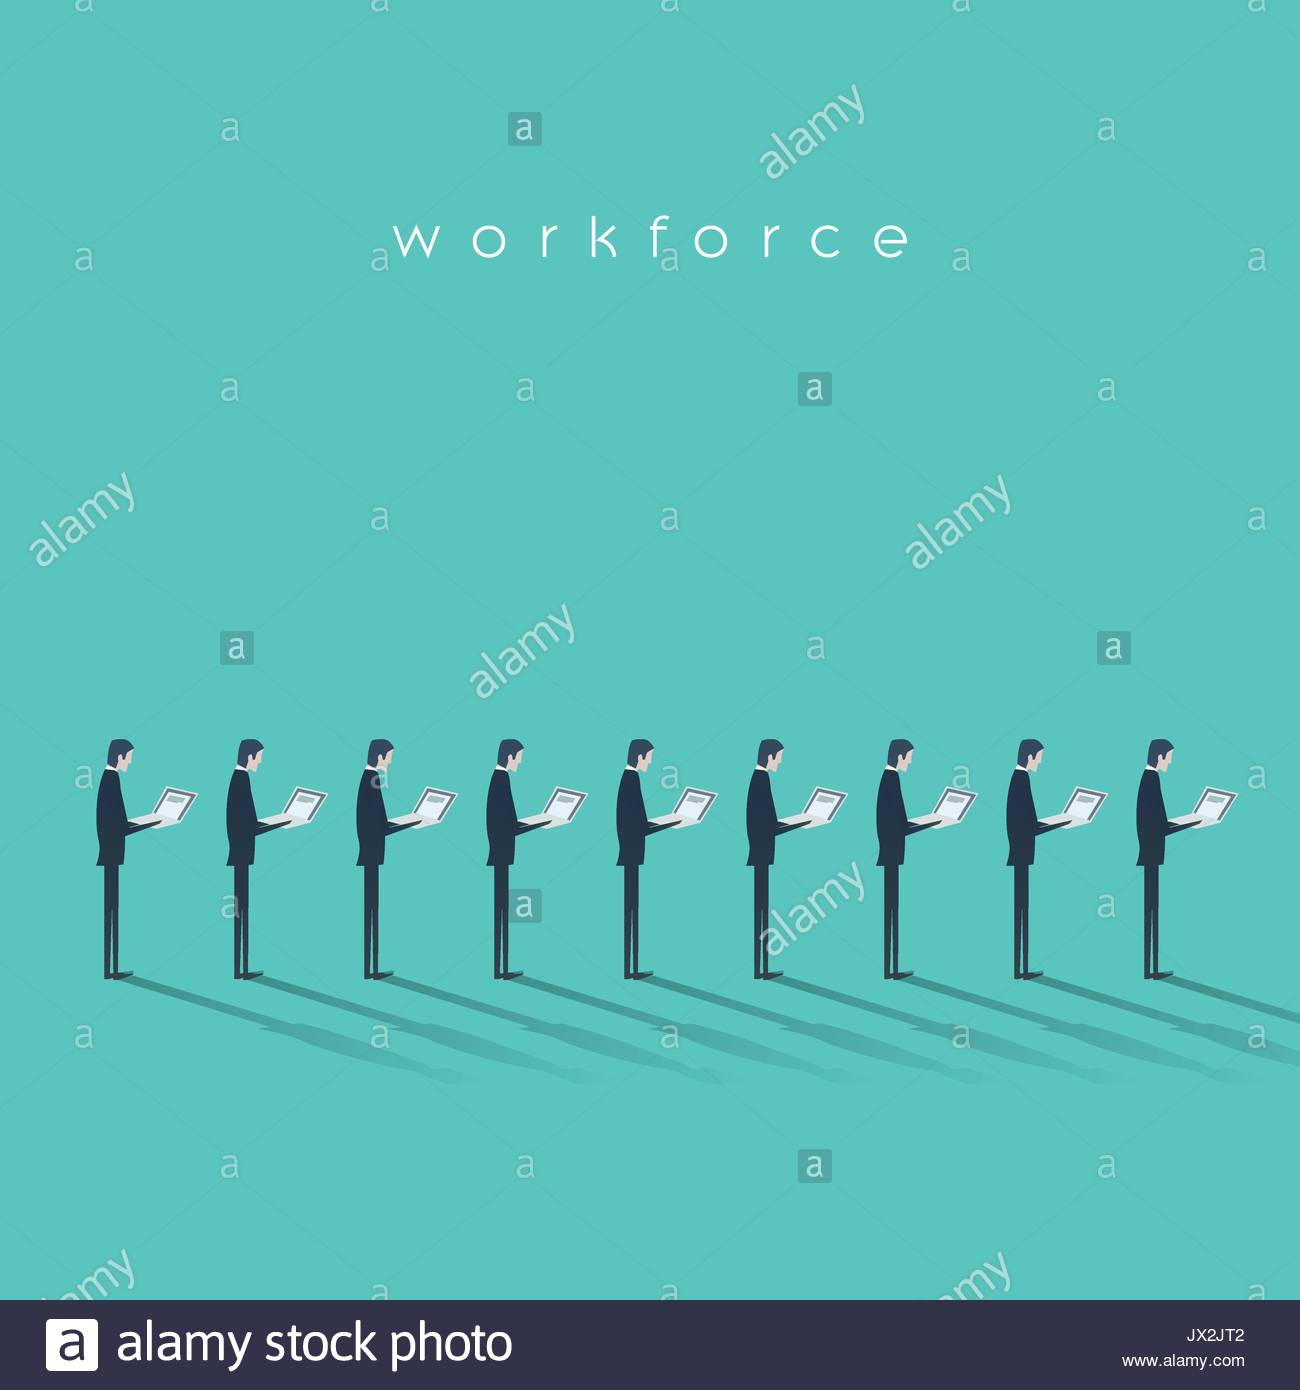 Business workforce vector illustration concept with businessmen doing menial repetitive job. Business outsourcing concept. Eps10 vector illustration - Stock Image